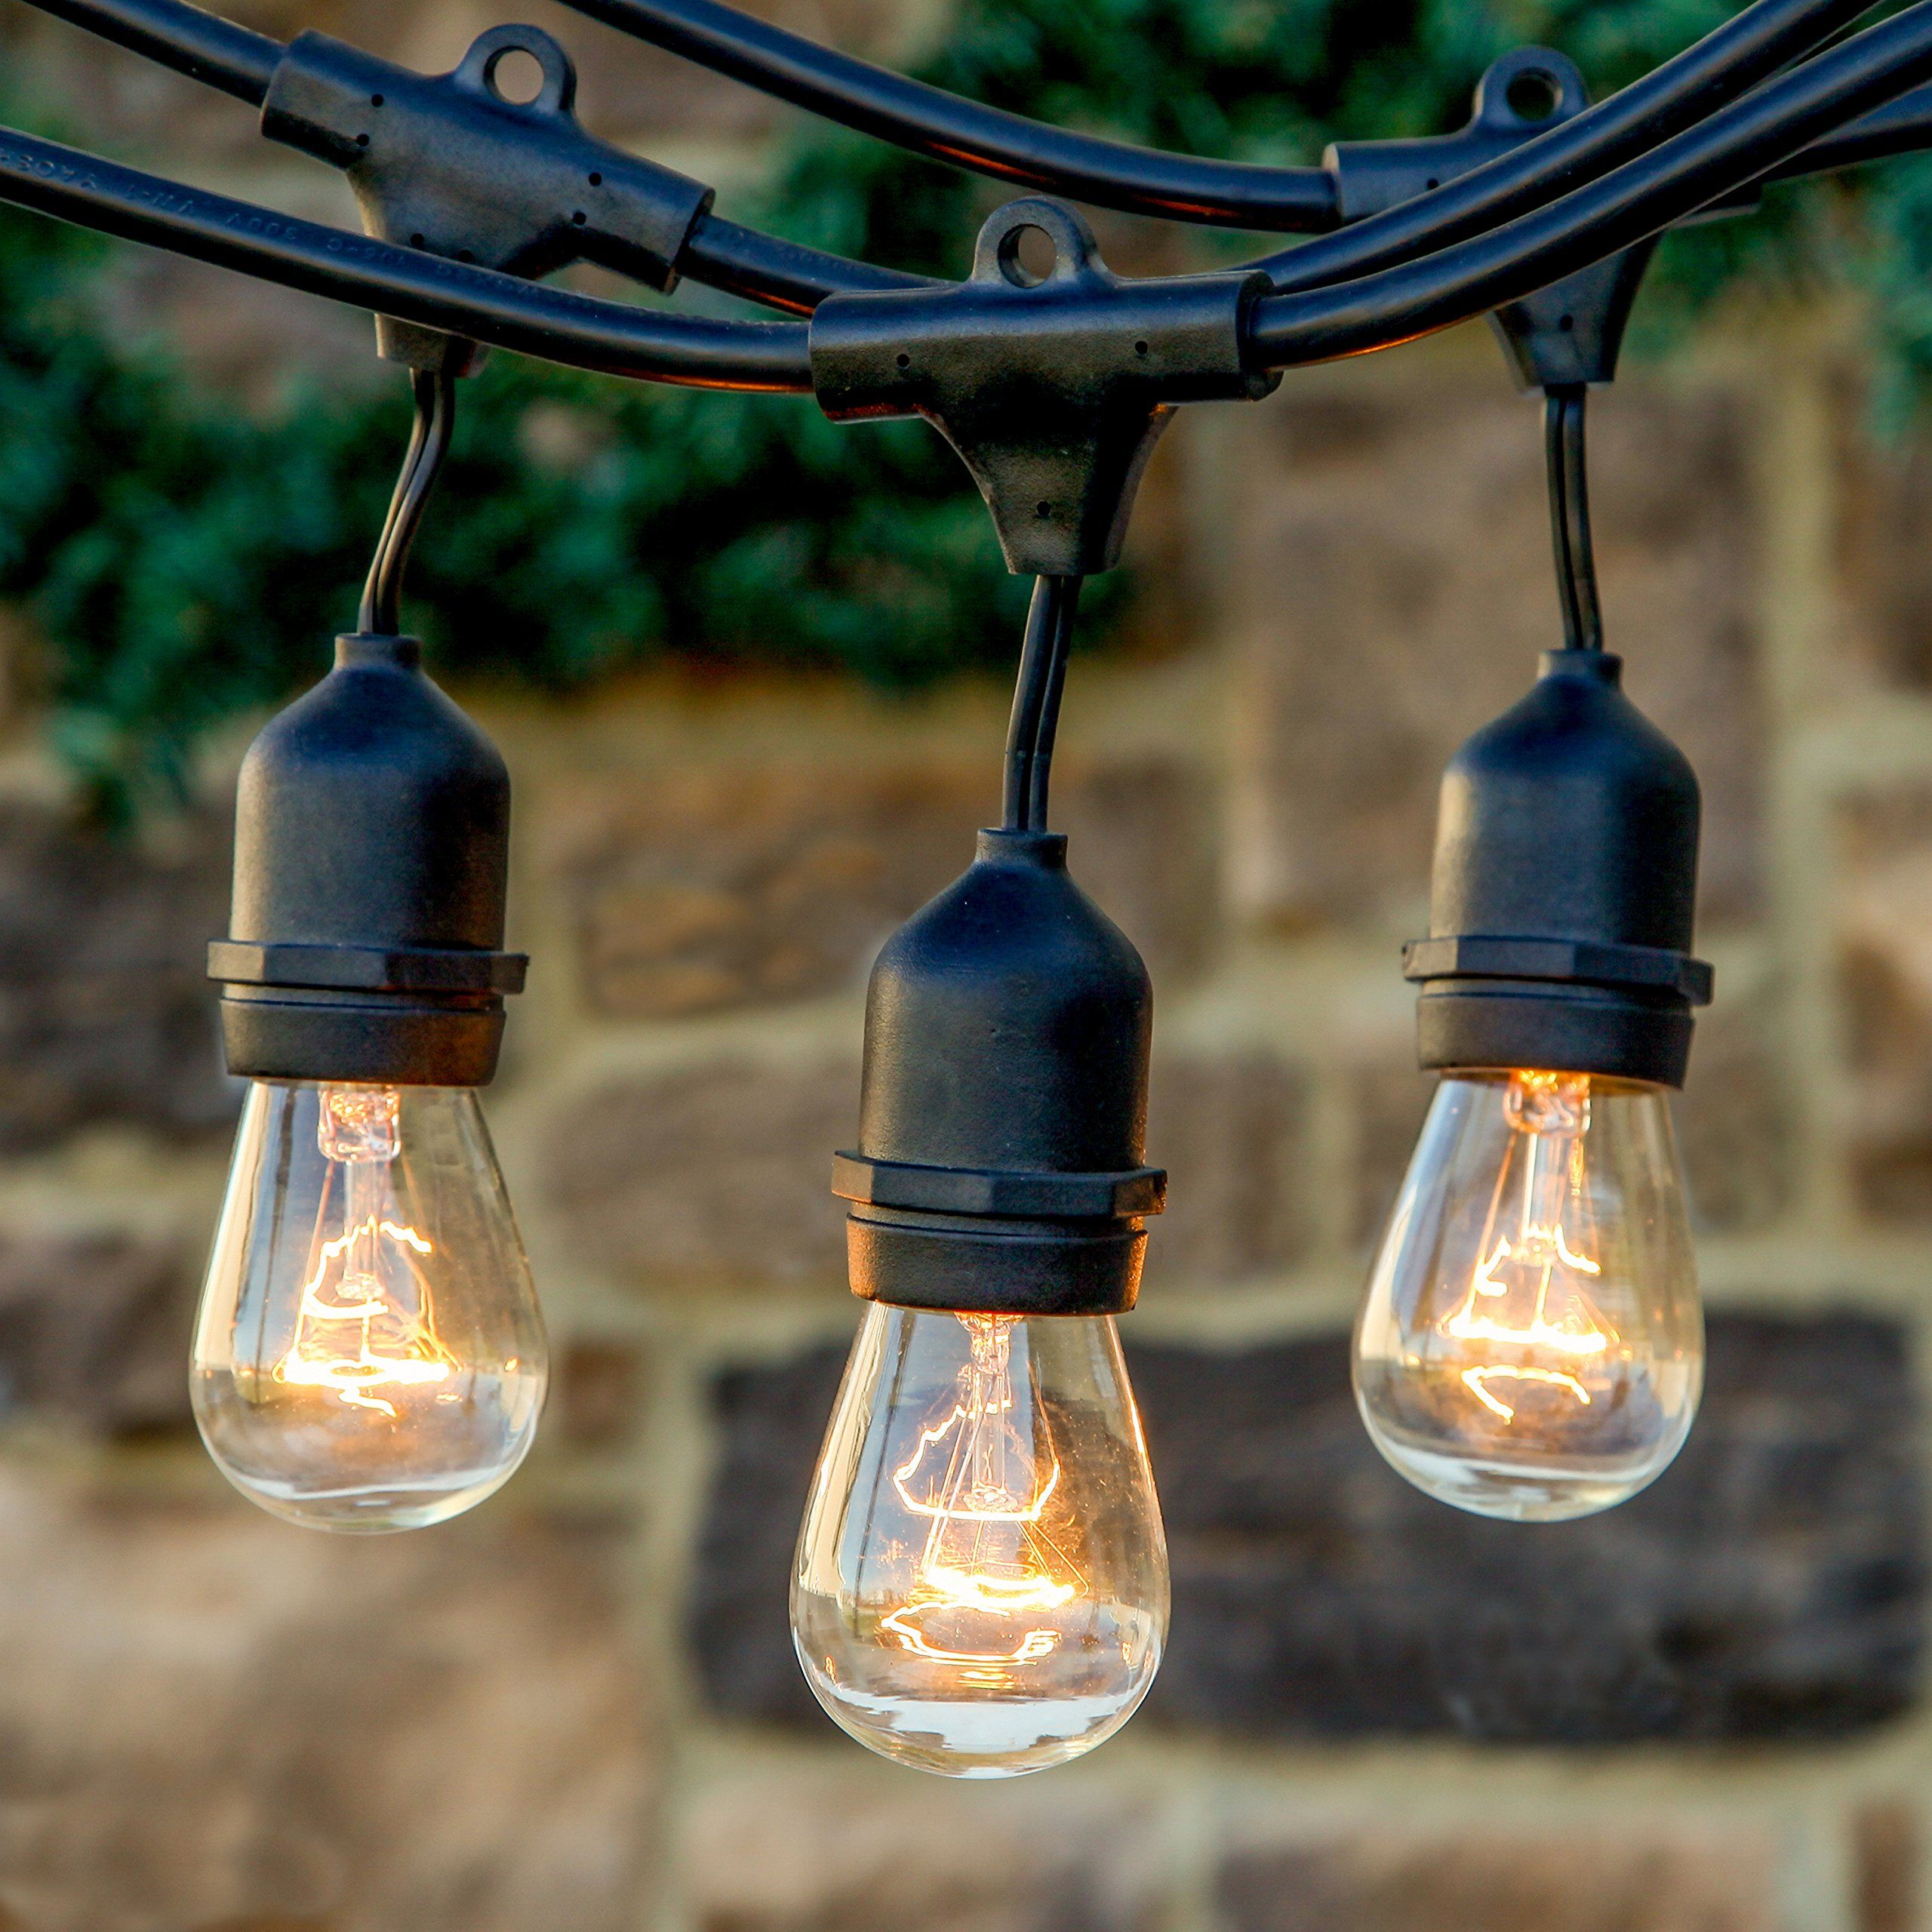 20 stunning rustic edison bulbs wedding decor ideas - Decorating with string lights indoors ...